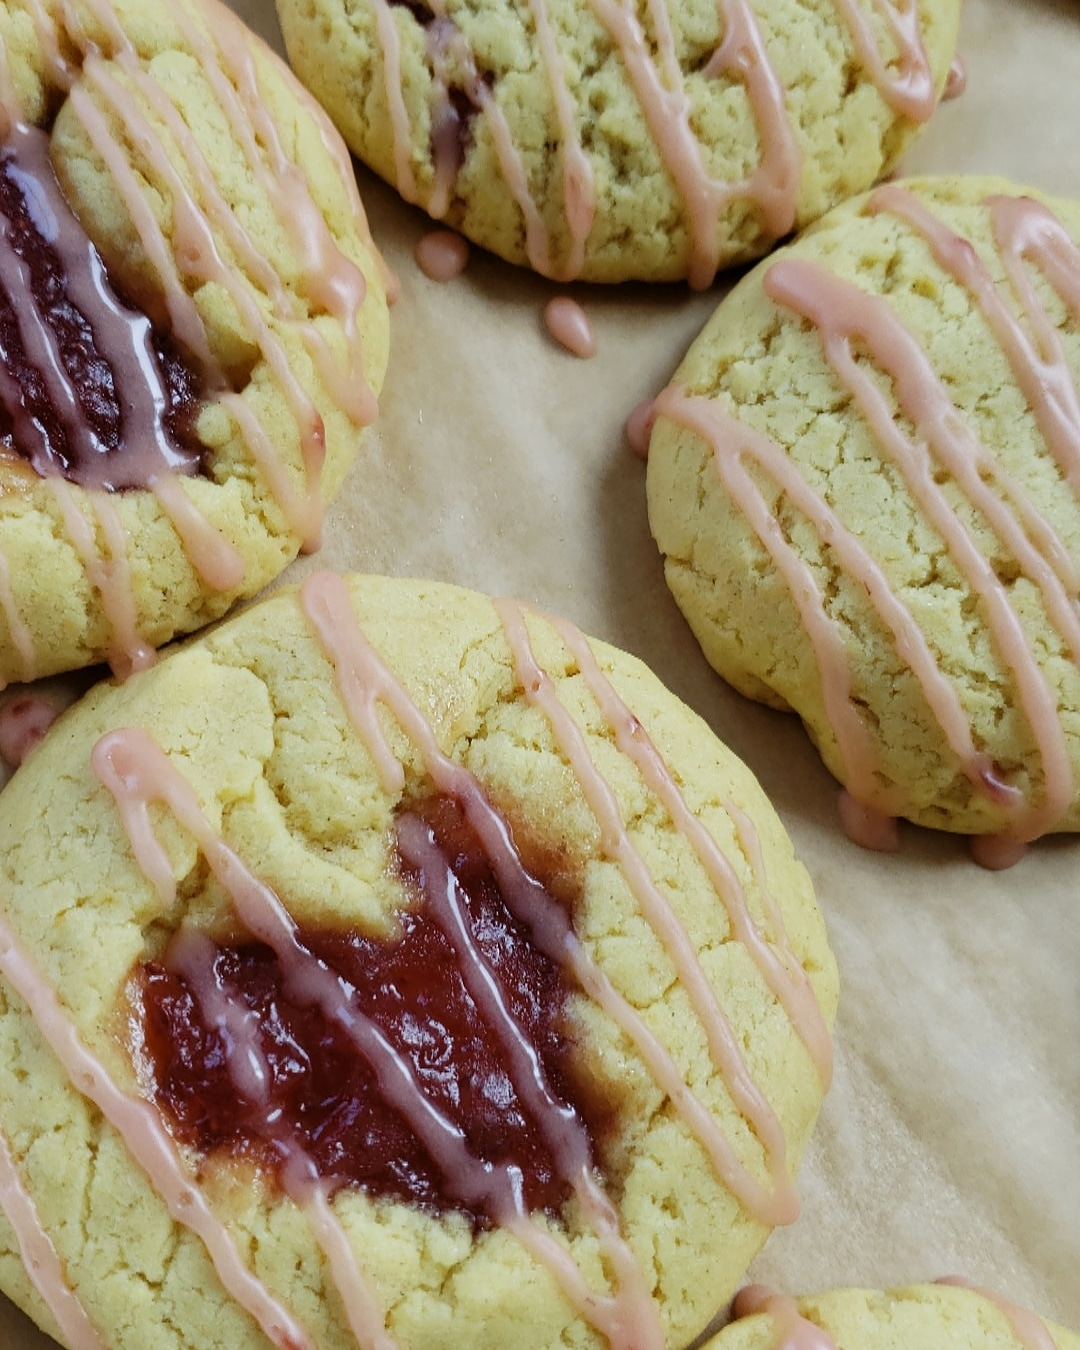 VEGAN STRAWBERRY LEMONADE COOKIE   SCRATCH MADE VEGAN LEMON COOKIE FILLED WITH ORGANIC STRAWBERRY PRESERVES DRIZZLED WITH STRAWBERRY LEMONADE ICING.   AVAILABLE DOSES:  1 COOKIE - 50 MG   VEGAN, GLUTEN FREE, SOY FREE